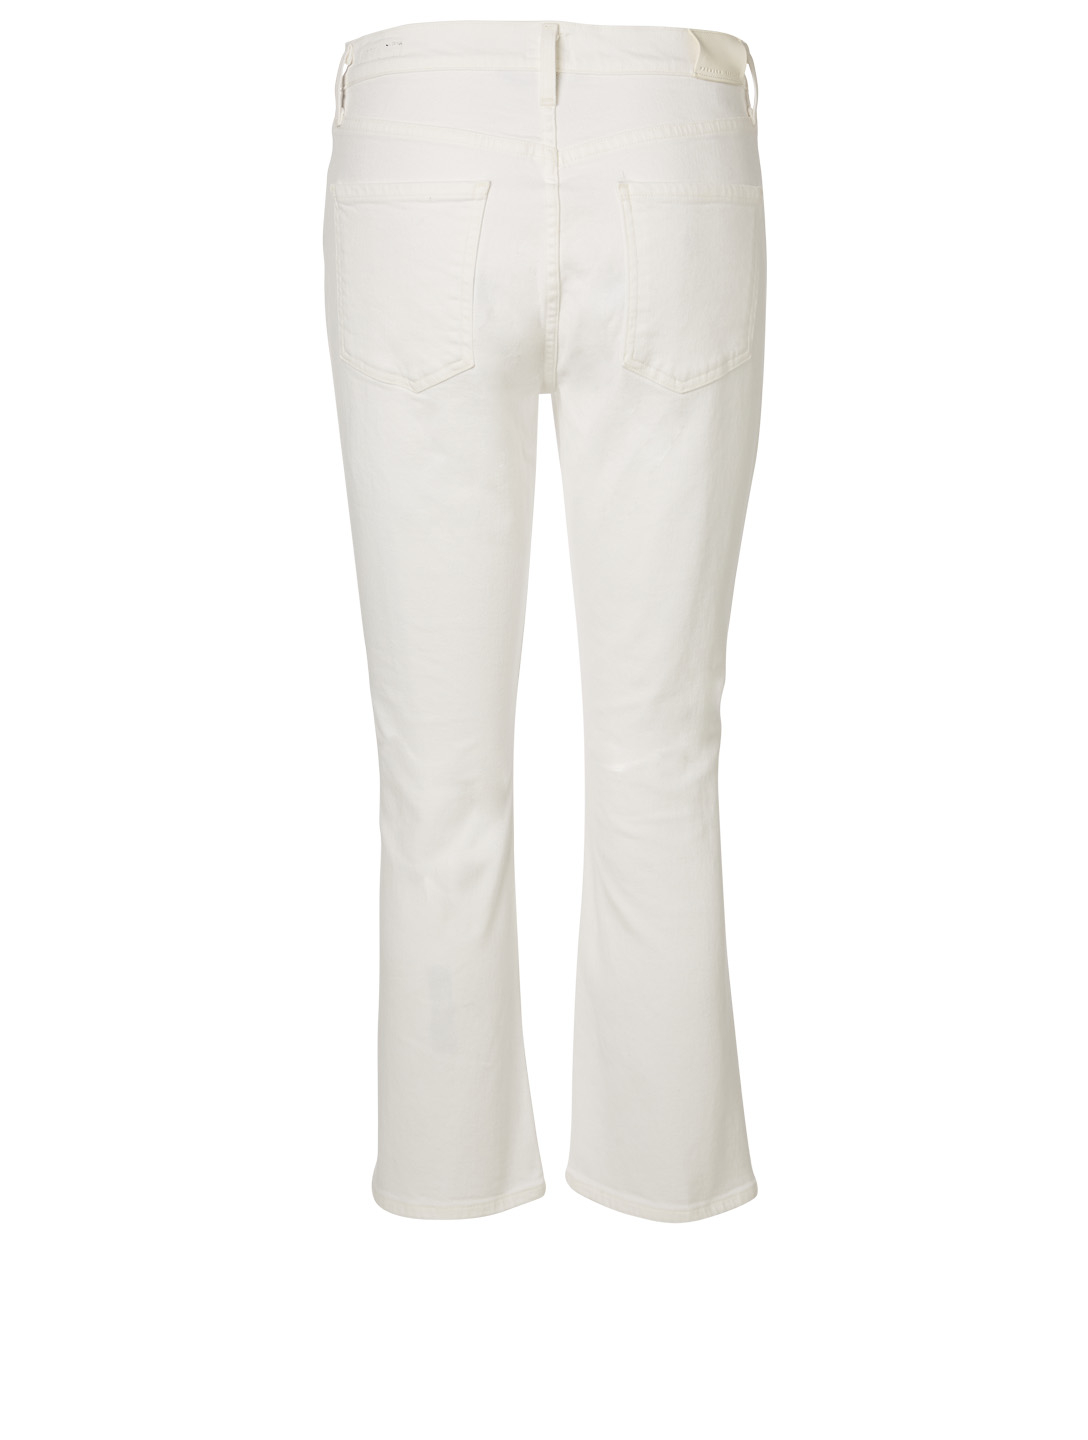 CITIZENS OF HUMANITY Demy Cropped Flare Jeans Women's White